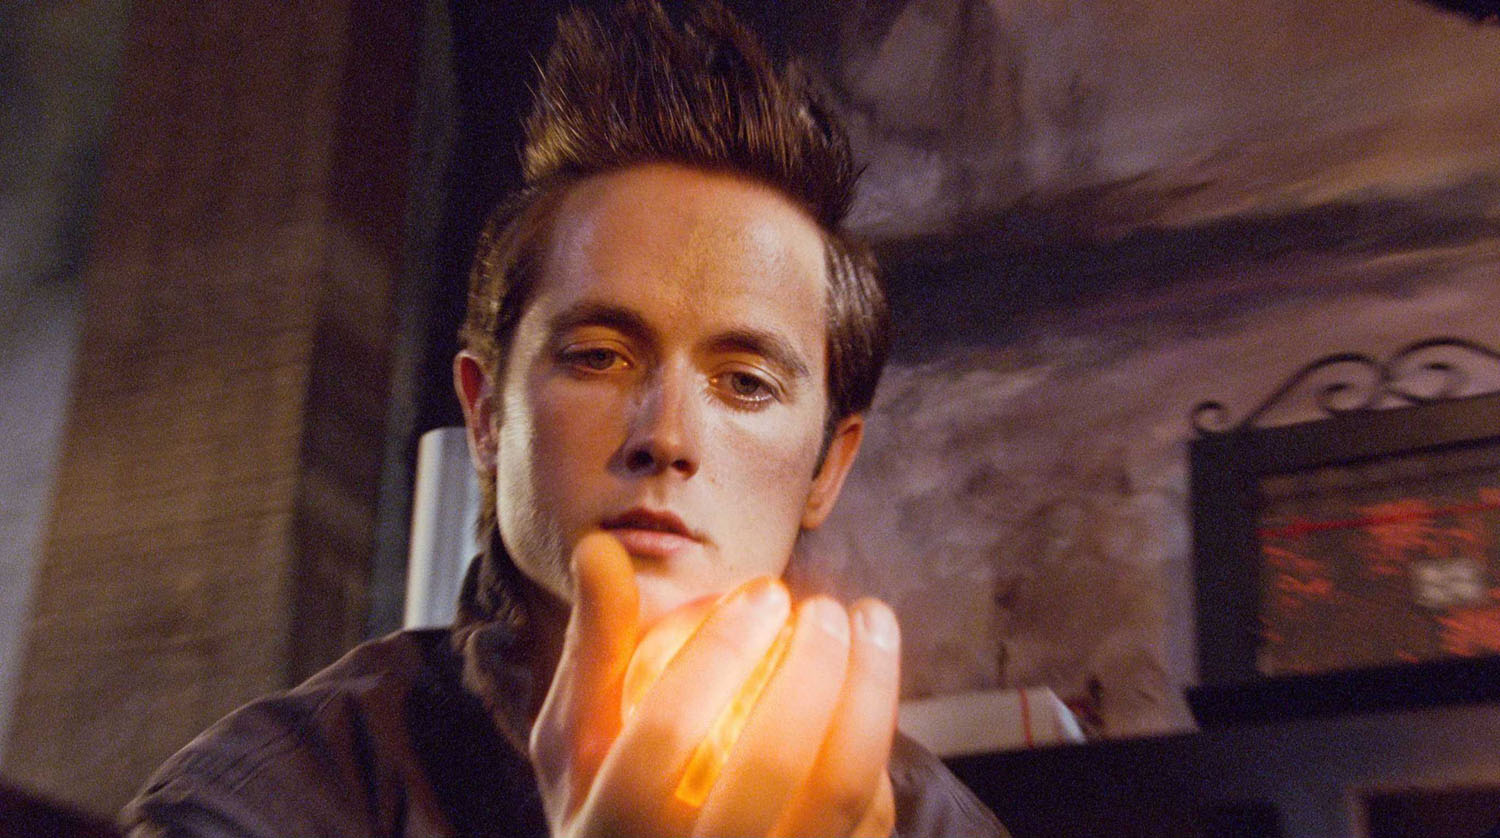 Justin Chatwin in Dragonball Evolution